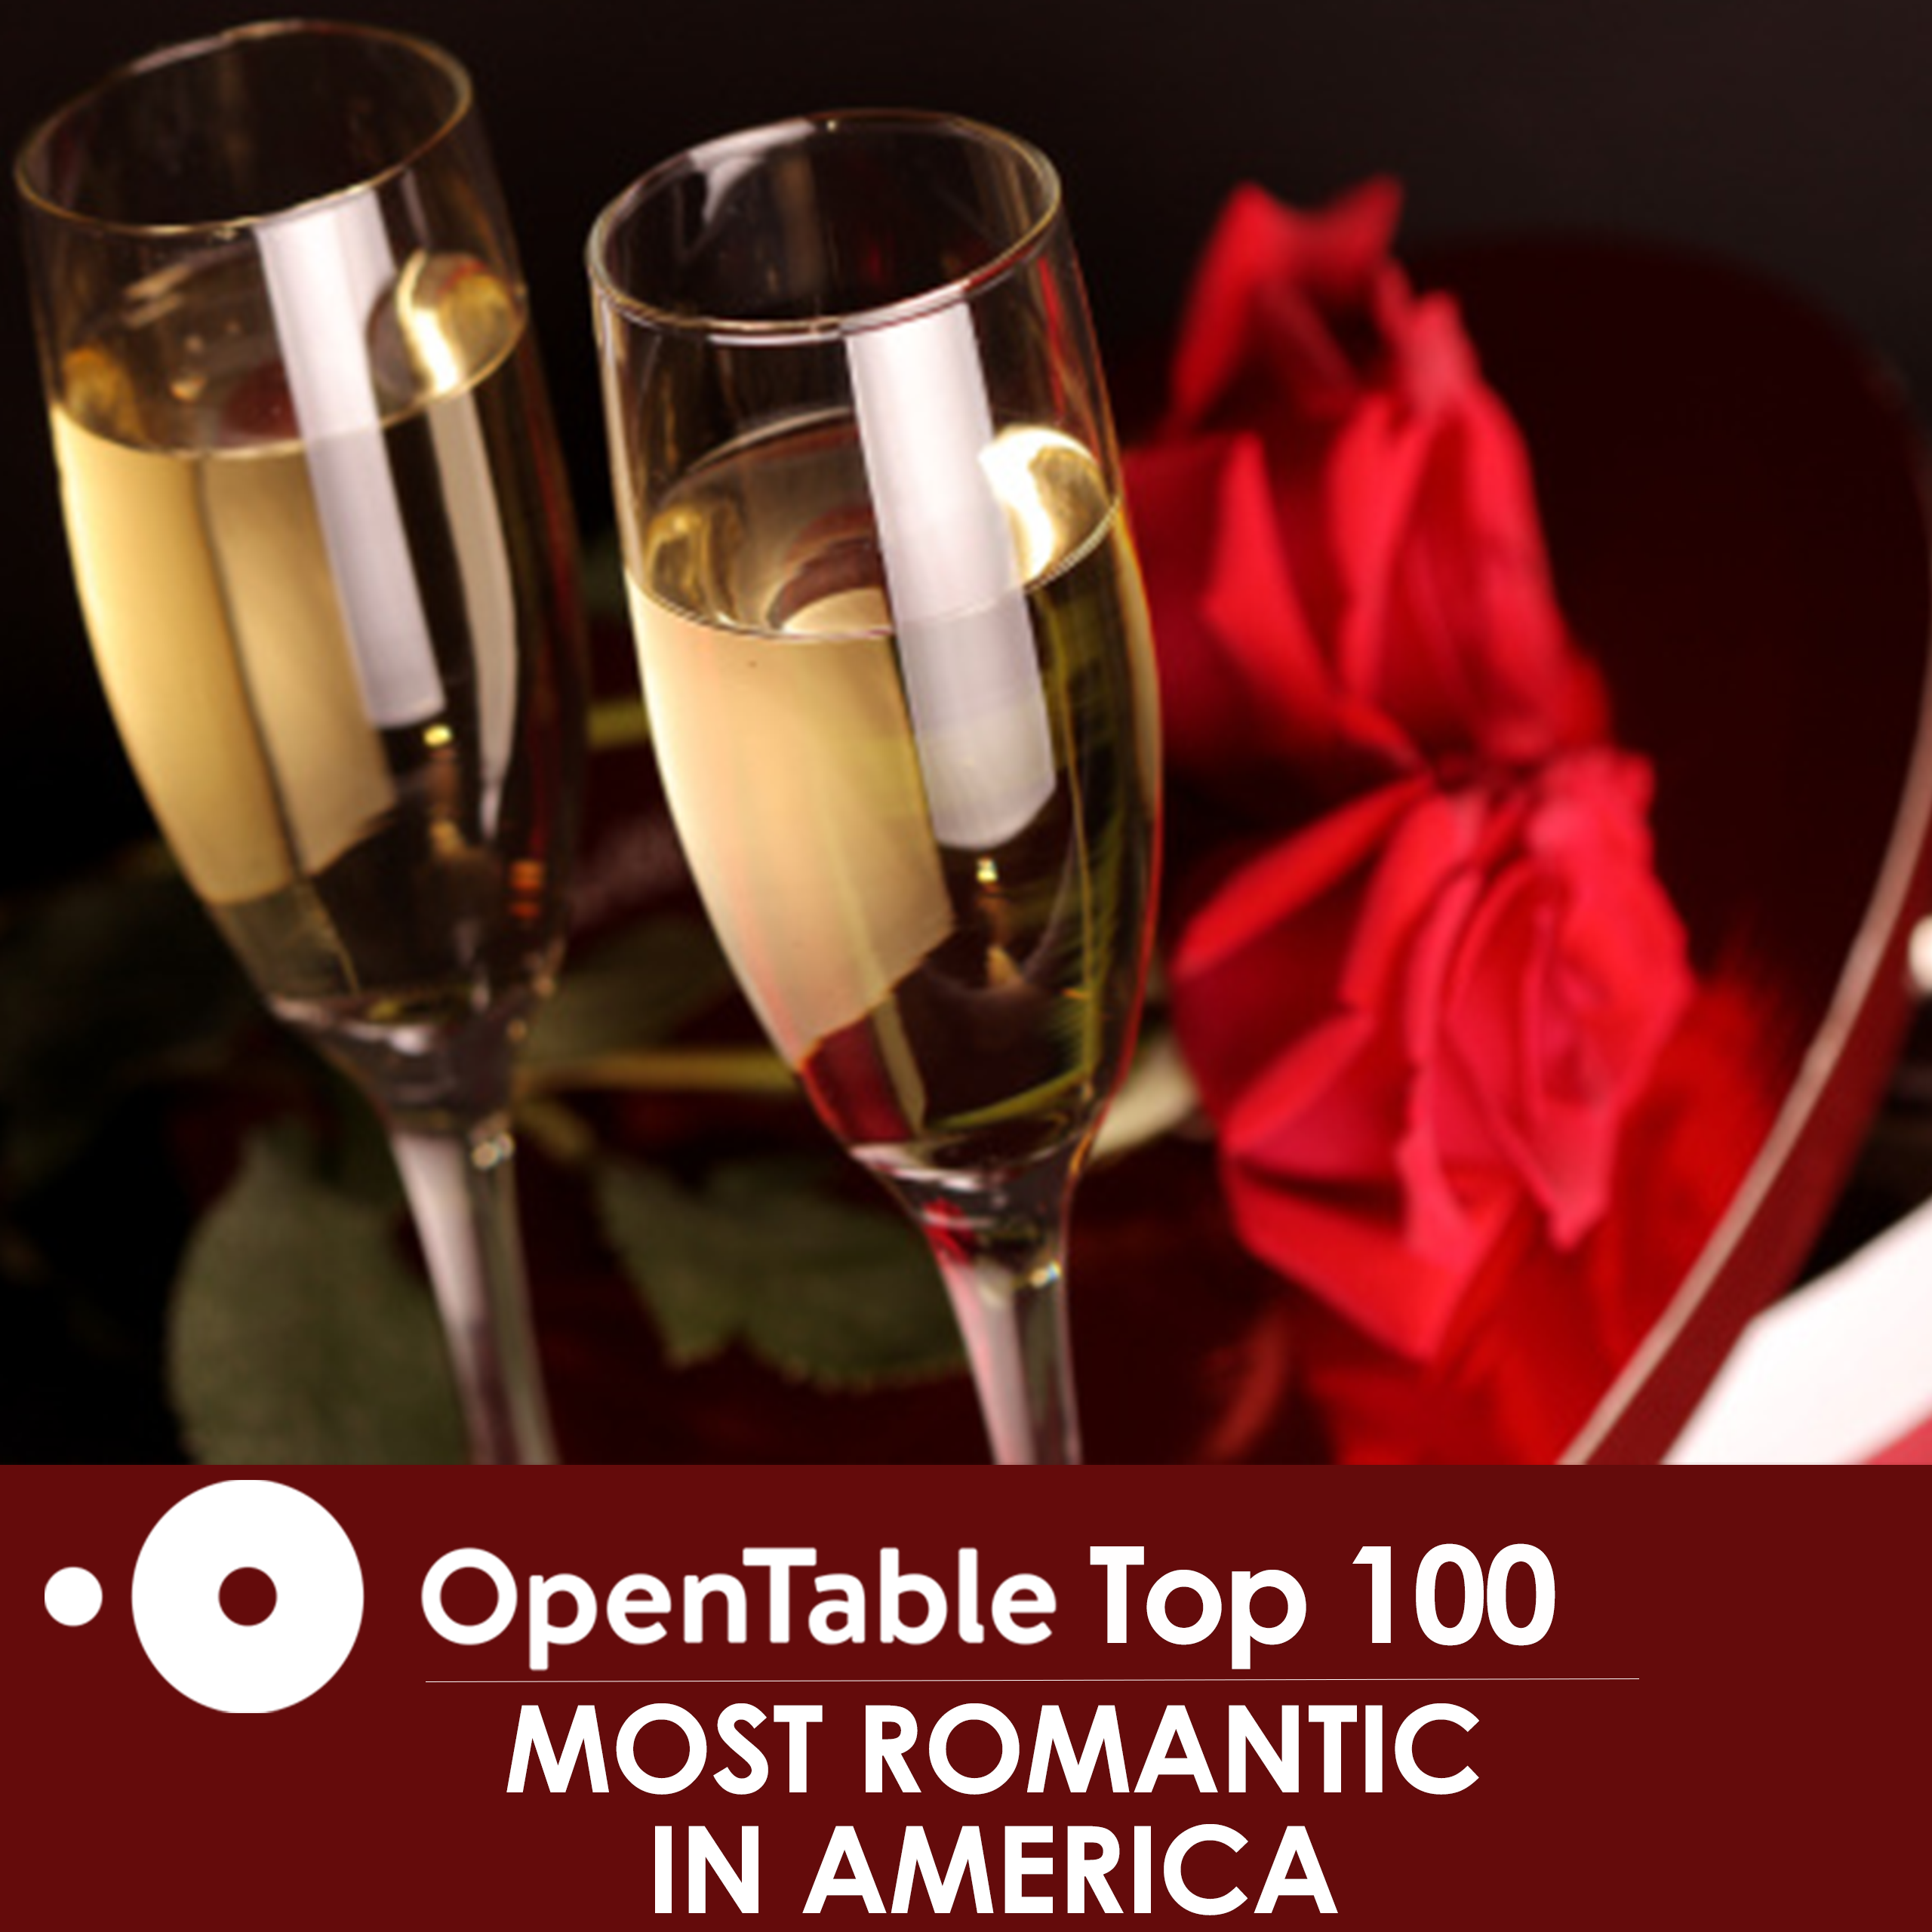 OpenTable Most Romantic